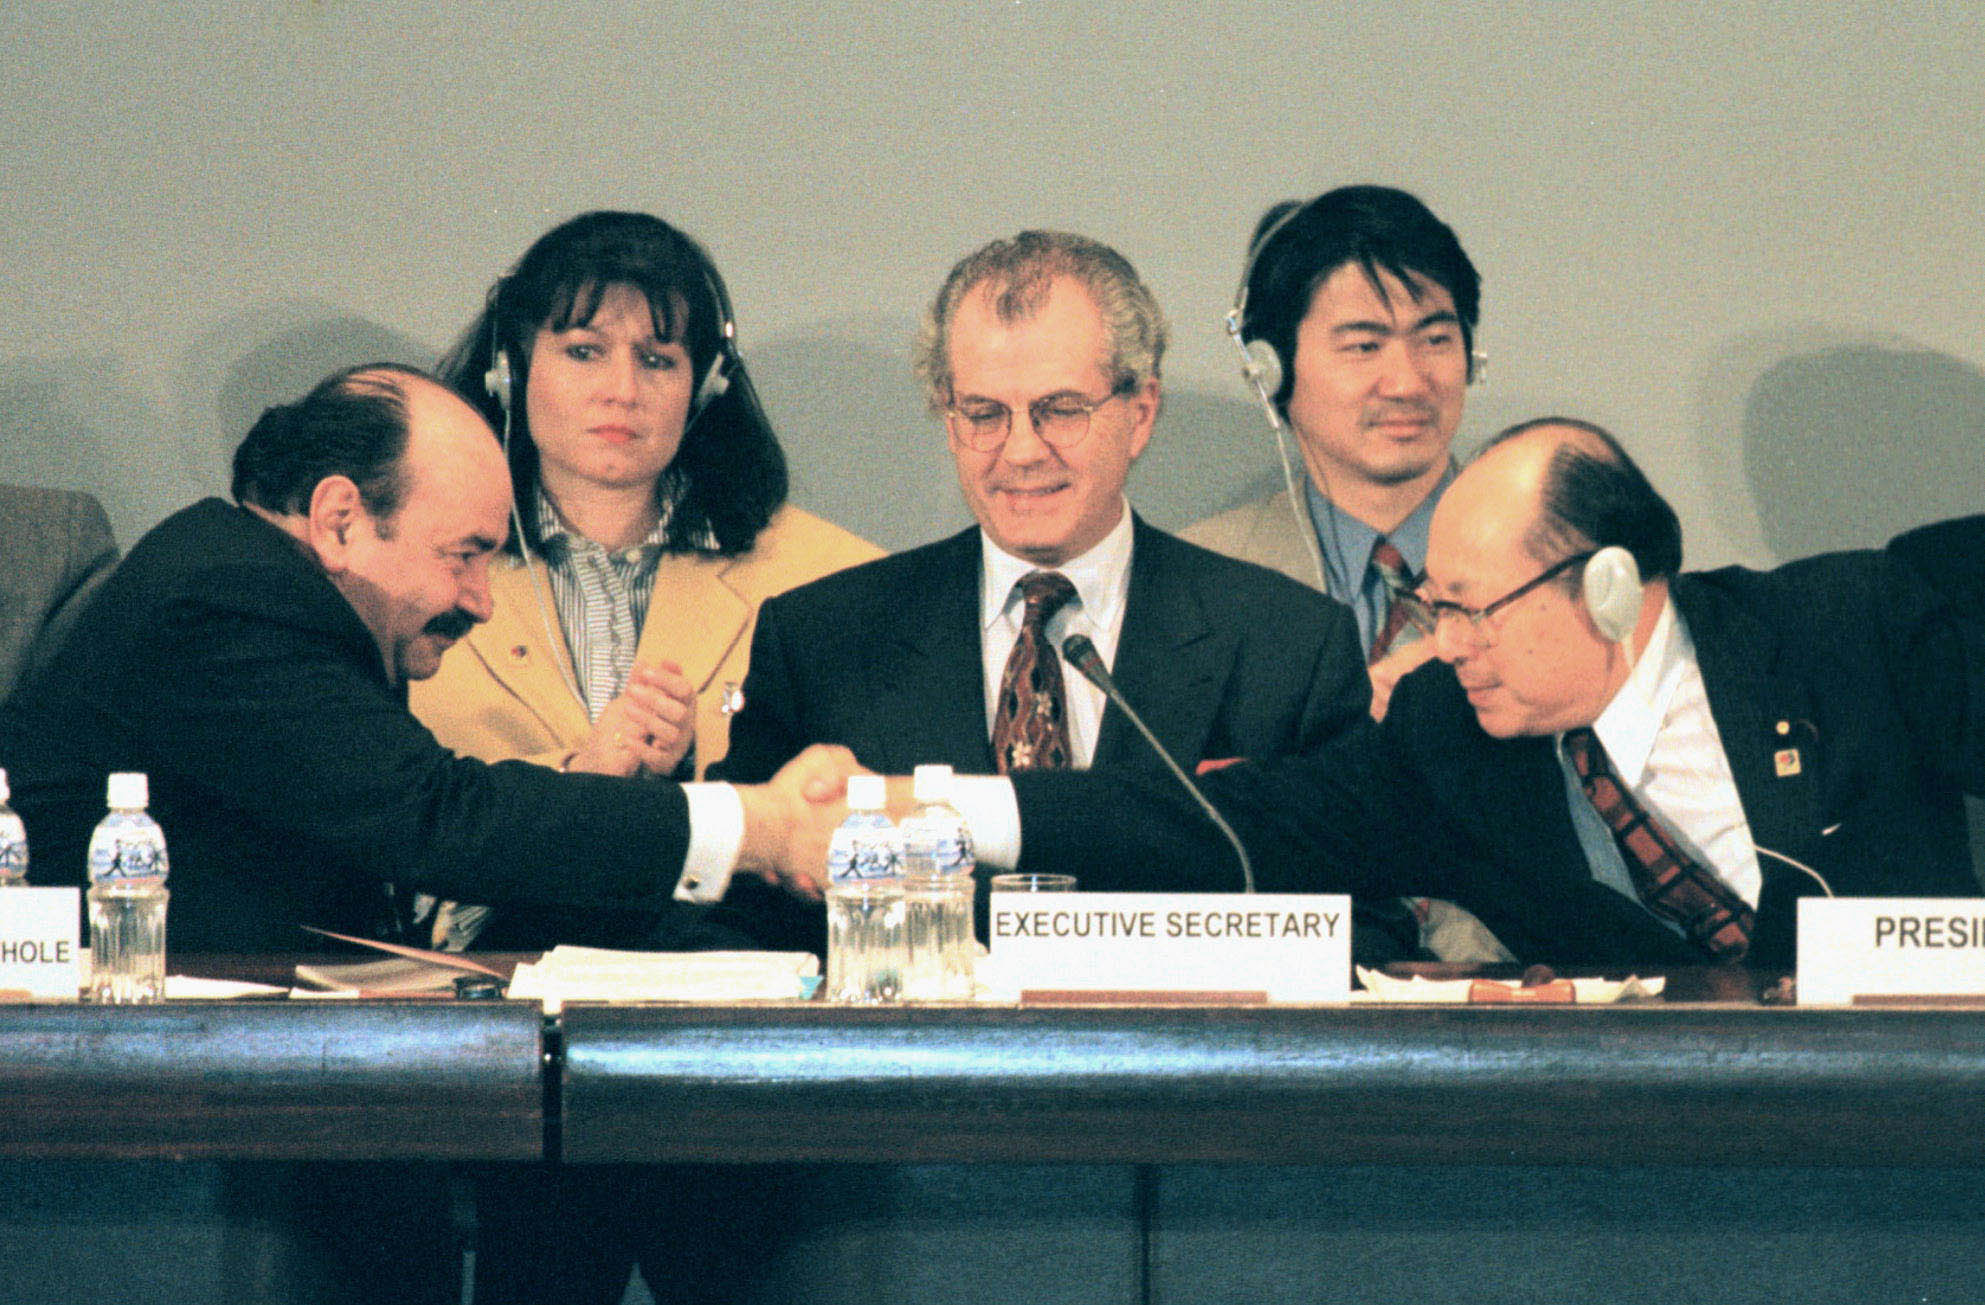 Raul Estrada, chairman of the third Conference of the Parties to the U.N. Framework Convention on Climate Change (COP3), shakes hands with Japan's environment chief, Hiroshi Oki, as the Kyoto Protocol is adopted in the ancient capital in December 1997.   KYODO